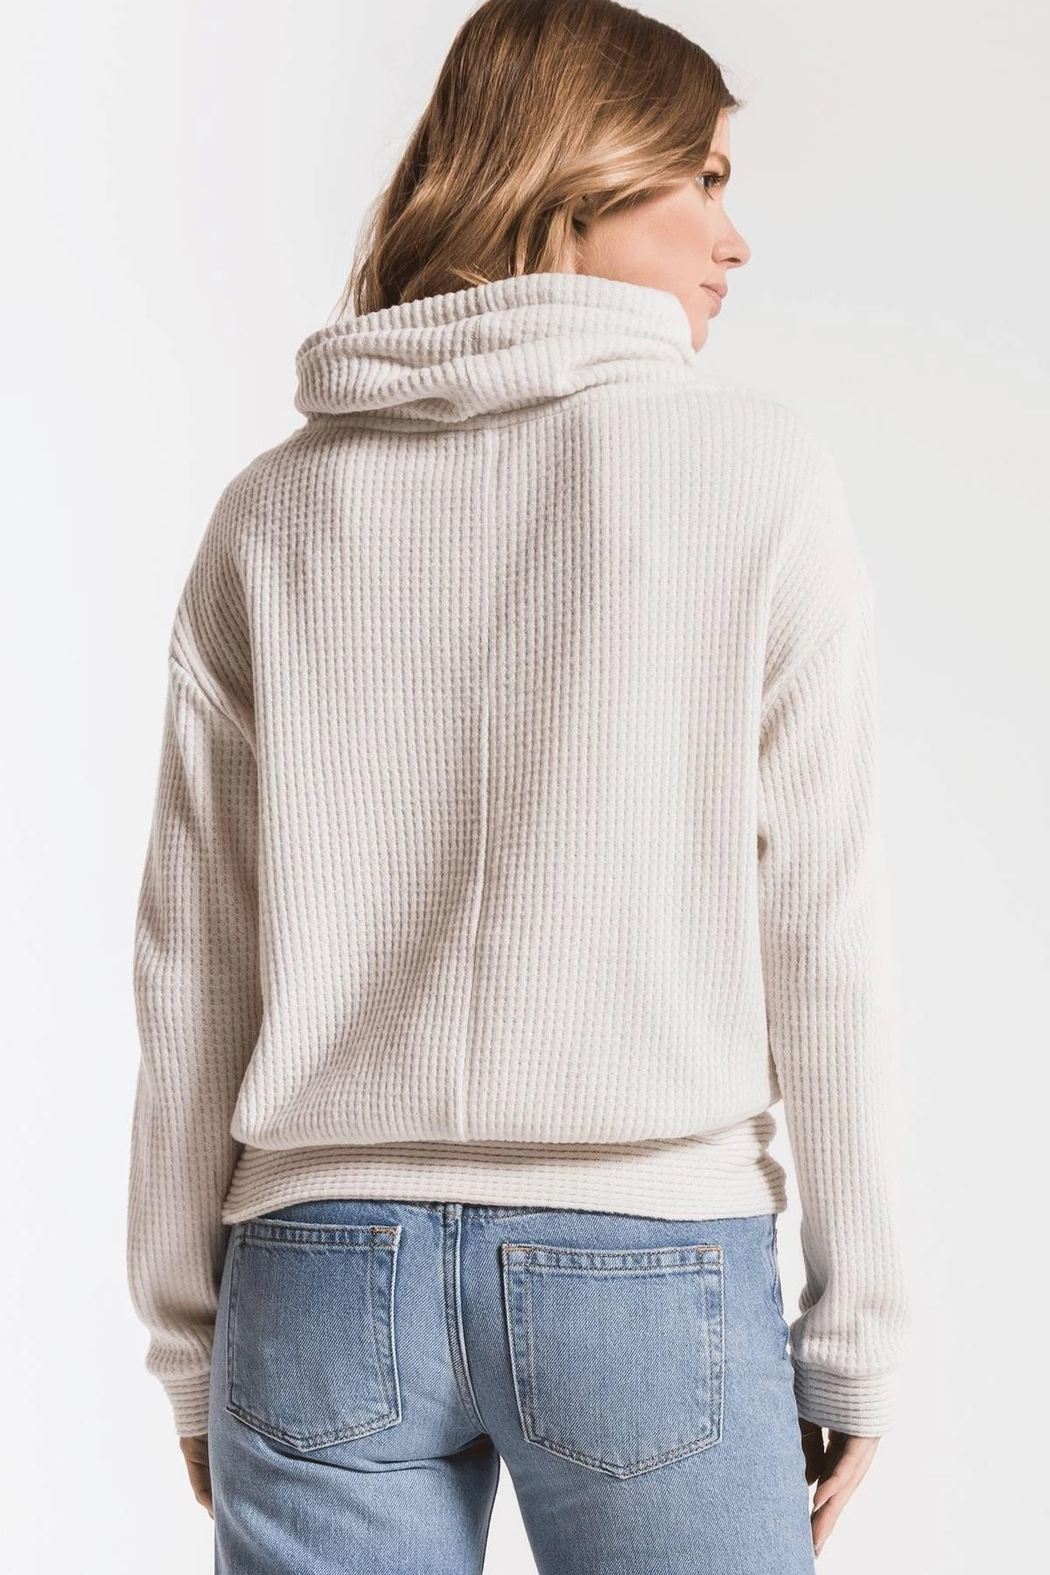 z supply Cowl Neck Waffle Thermal - Back Cropped Image